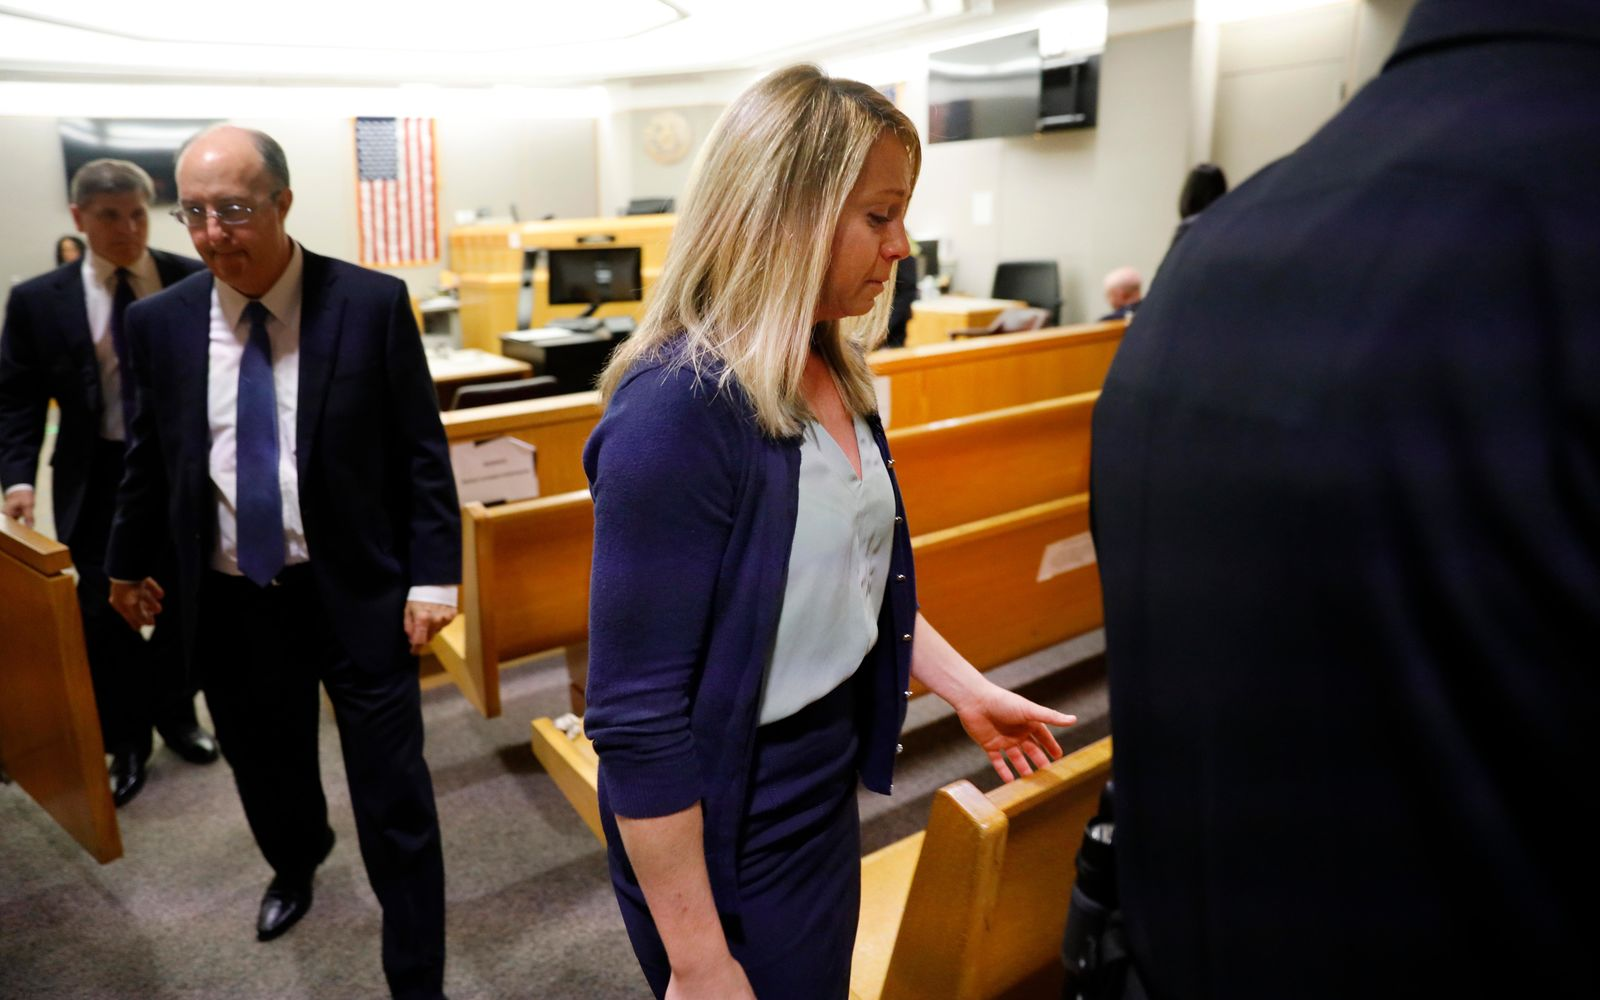 Fired Dallas police officer Amber Guyger leaves the courtroom after a jury found her guilty of murder Tuesday, Oct. 1, 2019, in Dallas. Guyger shot and killed Botham Jean, an unarmed 26-year-old neighbor in his own apartment last year. She told police she thought his apartment was her own and that he was an intruder. (Tom Fox/The Dallas Morning News via AP, Pool)